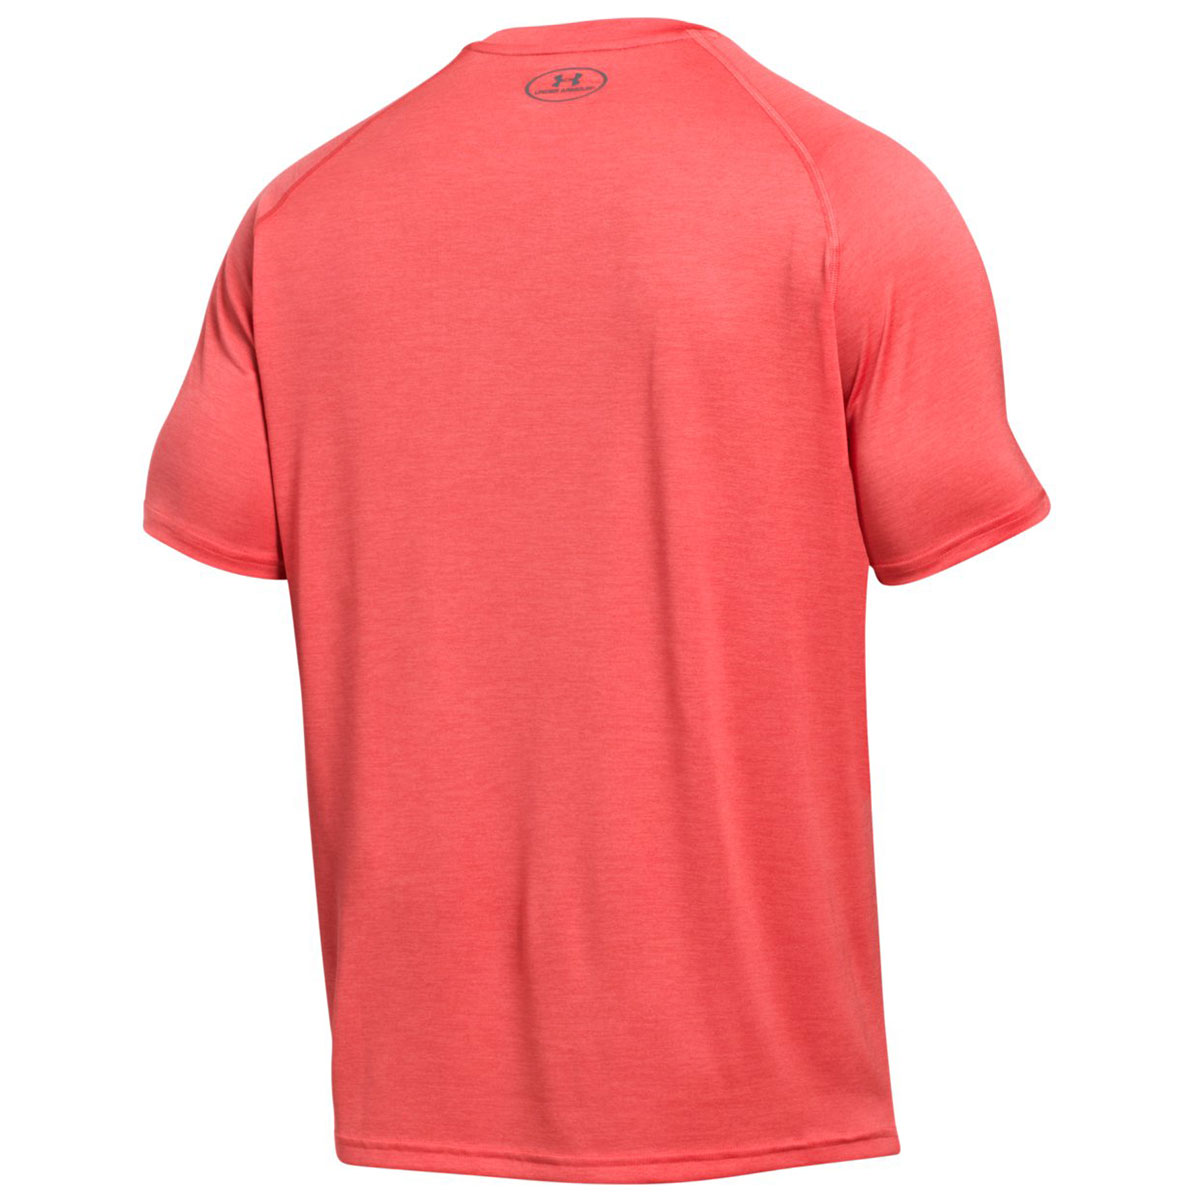 Under-Armour-Mens-UA-Tech-SS-T-Shirt-HeatGear-Training-31-OFF-RRP thumbnail 72